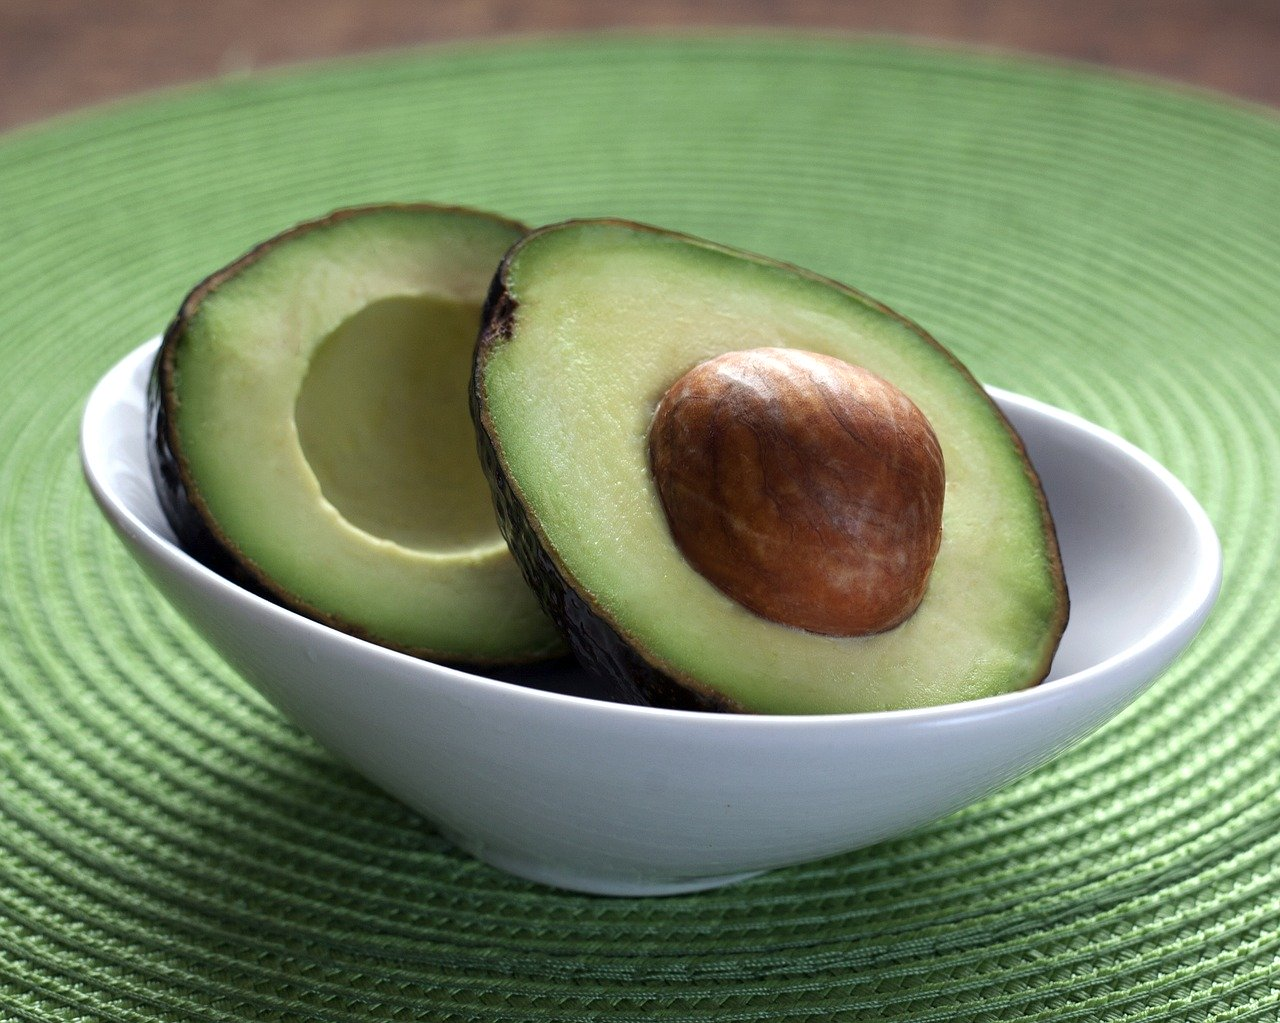 Ripe and ready to eat avocado make a delicious healthy snack